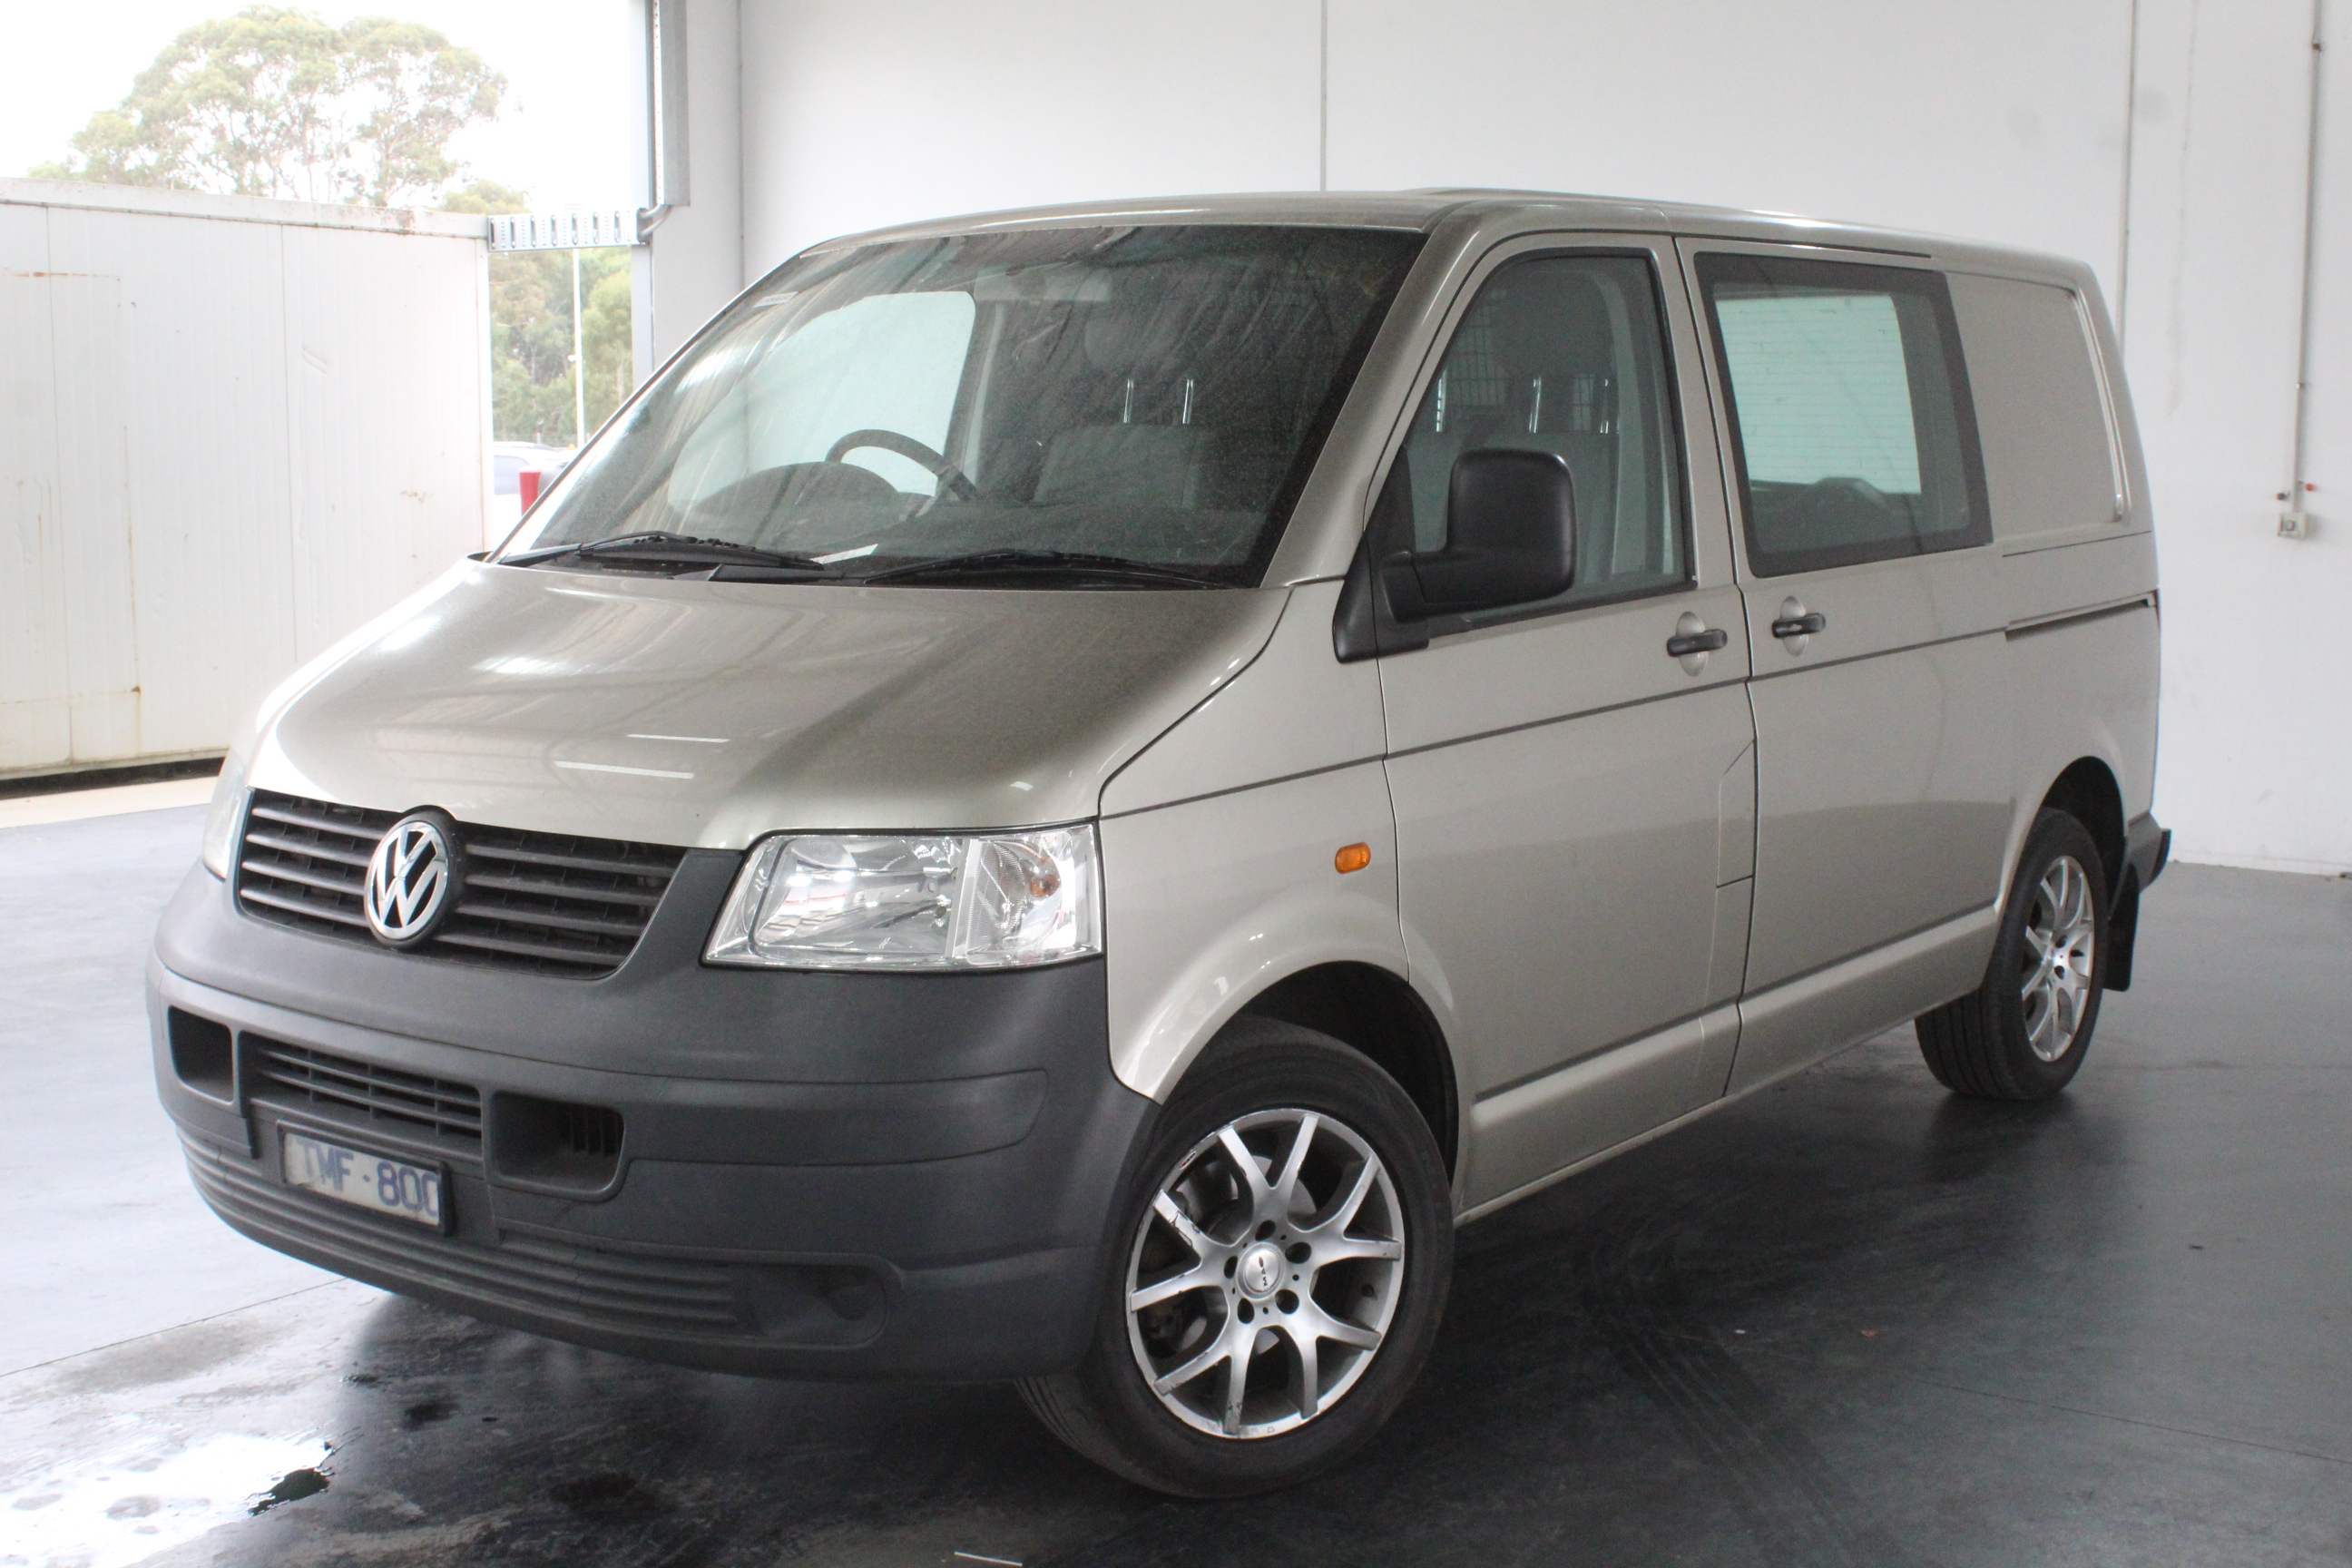 2005 Volkswagen Transporter (SWB) T5 Turbo Diesel Manual Van